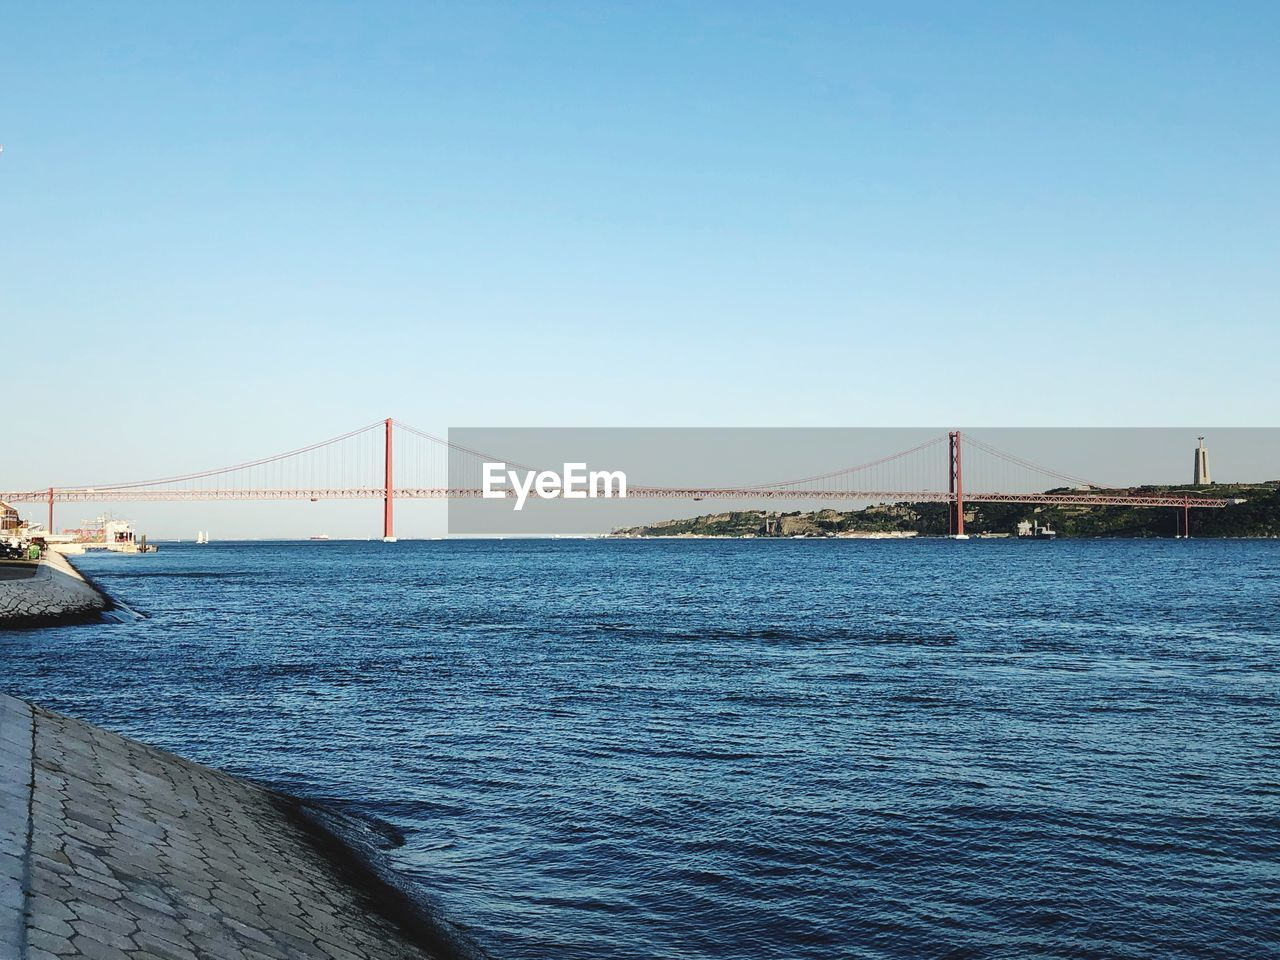 water, bridge, connection, bridge - man made structure, built structure, architecture, sky, suspension bridge, clear sky, sea, engineering, tourism, transportation, travel destinations, bay, bay of water, travel, nature, copy space, outdoors, long